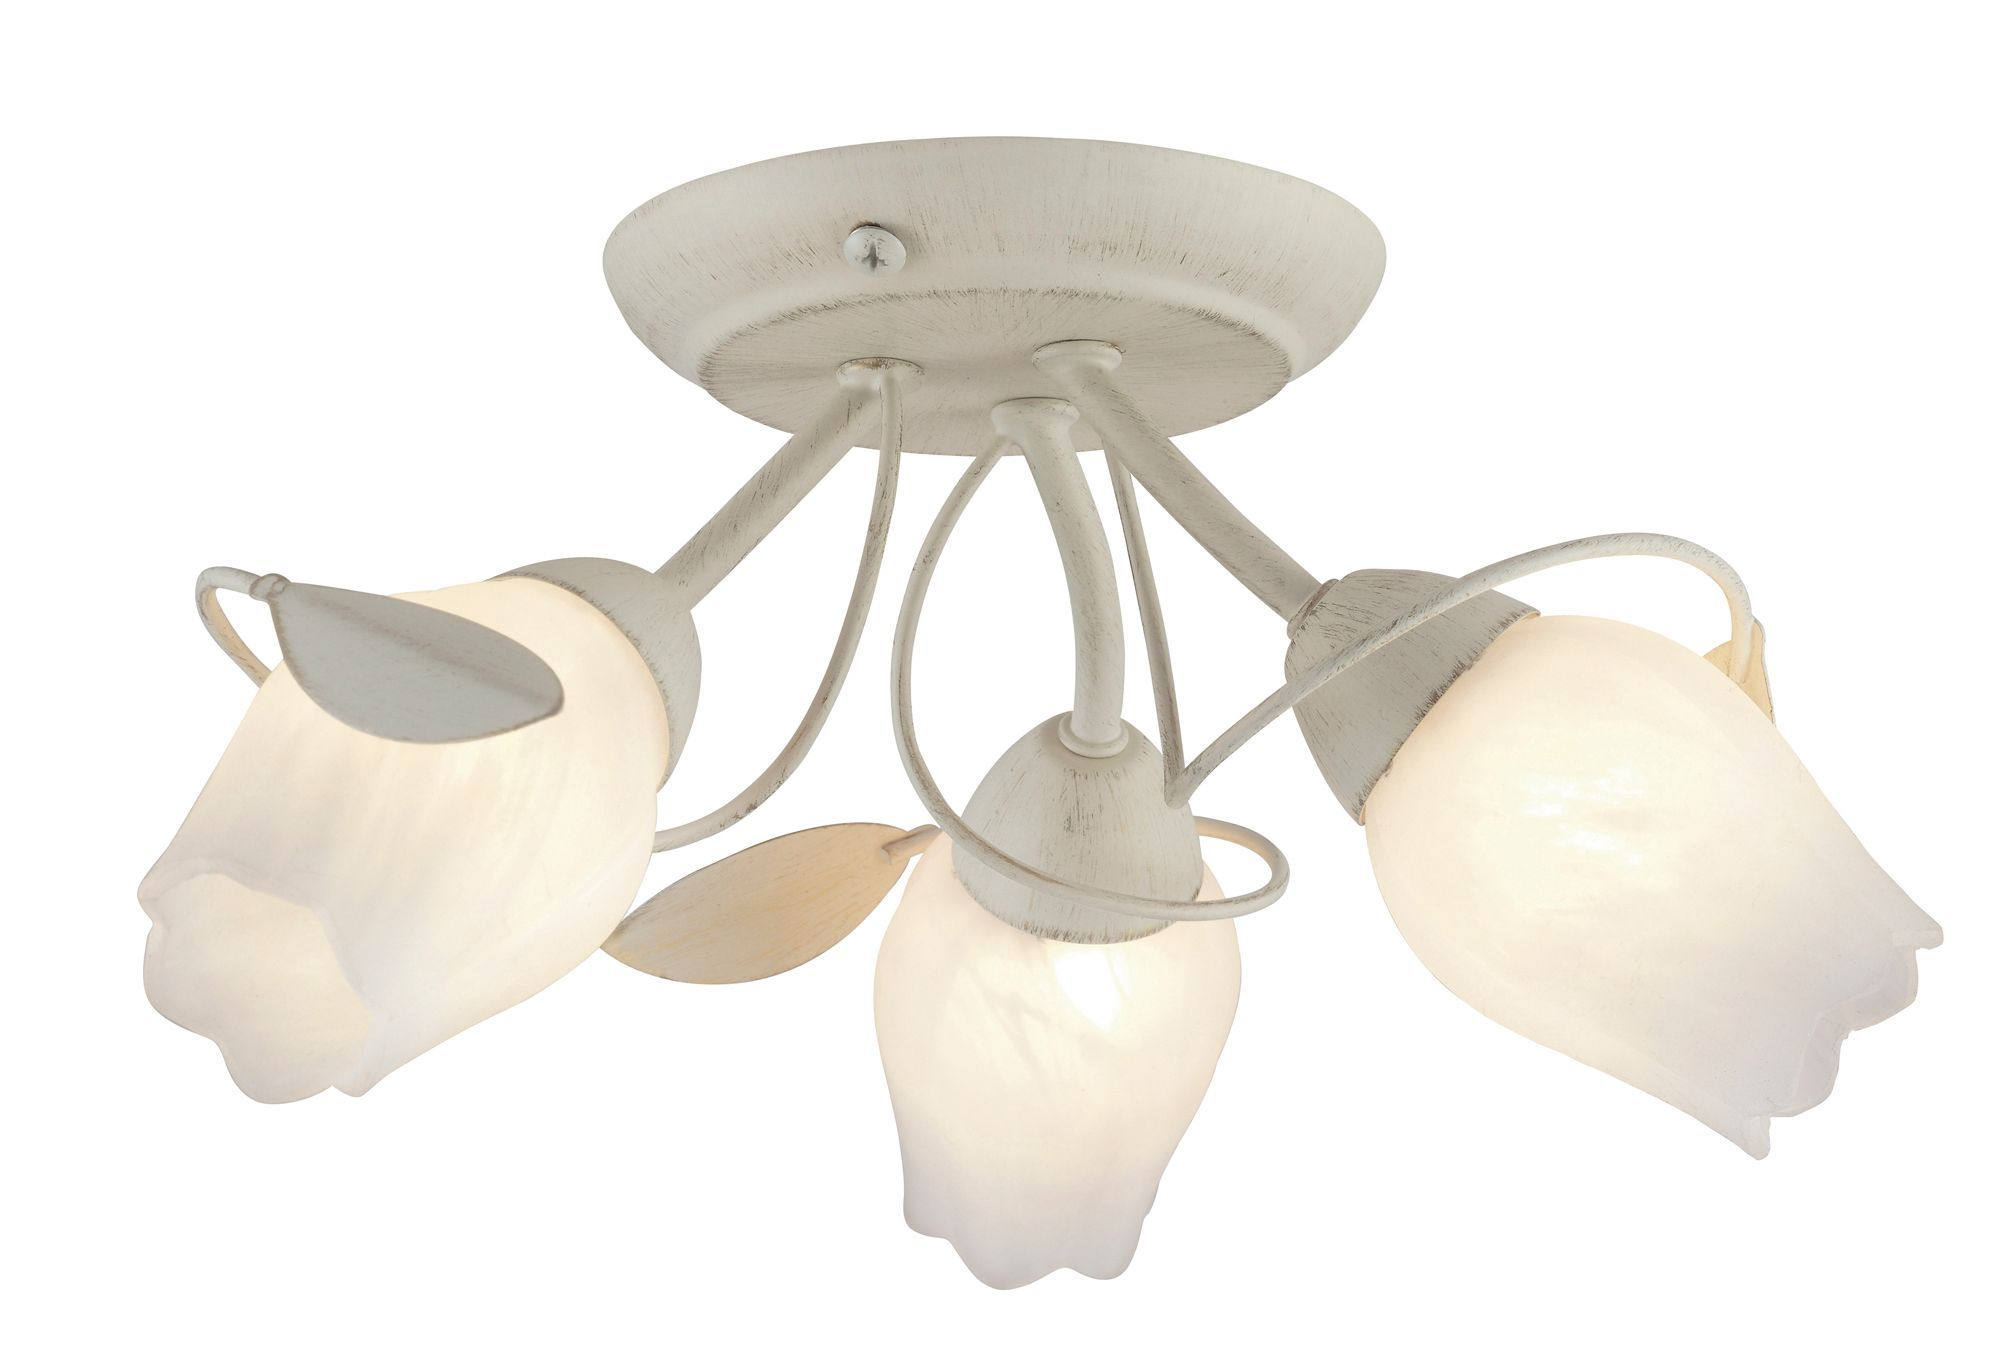 April Cream Brushed 3 Lamp Ceiling Light - B&Q for all your home and garden  supplies and advice on all the latest DIY trends